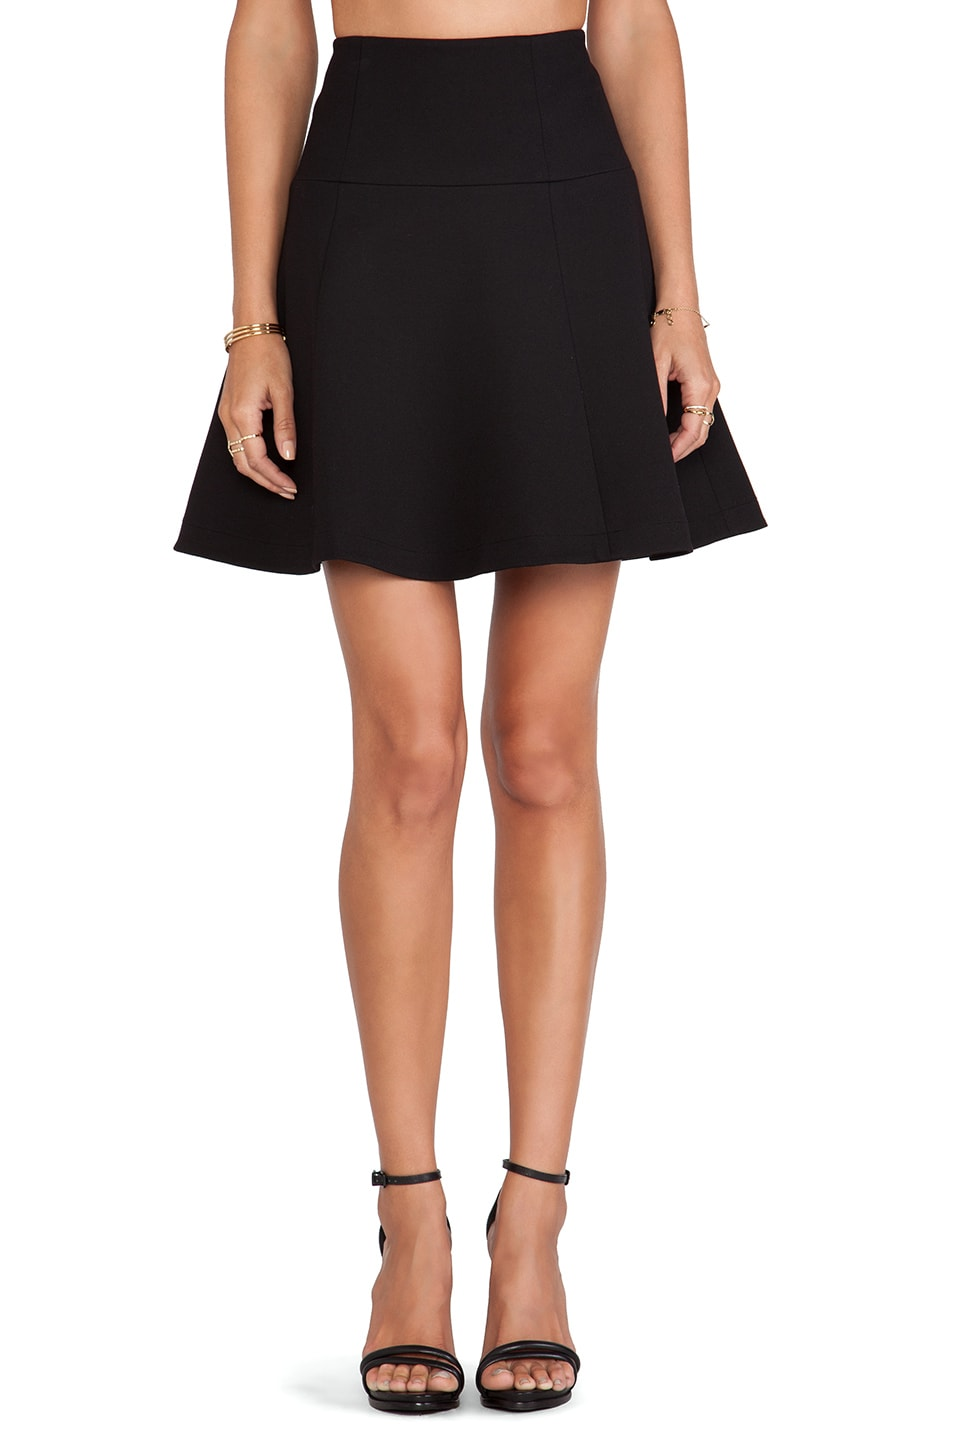 Nanette Lepore Author Skirt in Black